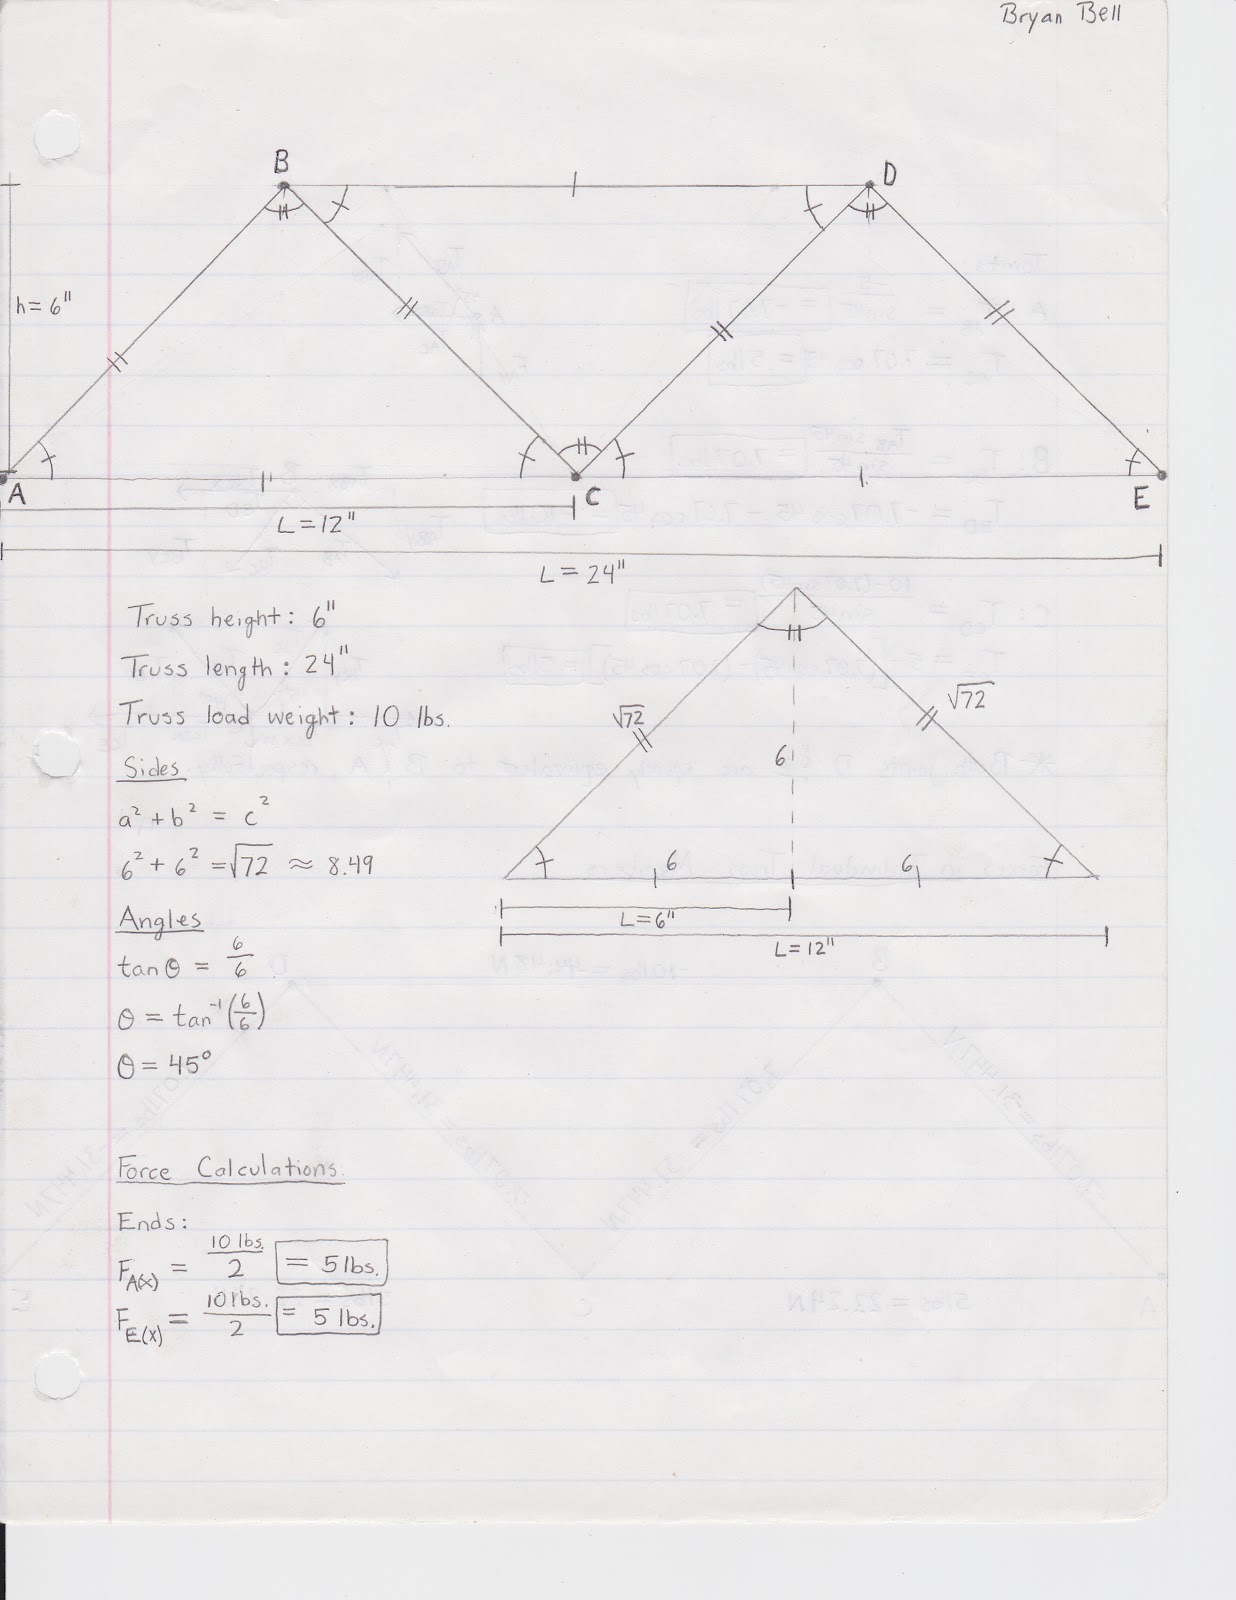 hight resolution of it was just simple trigonometry and force diagrams to figure out the force on each member both in pounds and in newtons the results of my truss analysis is